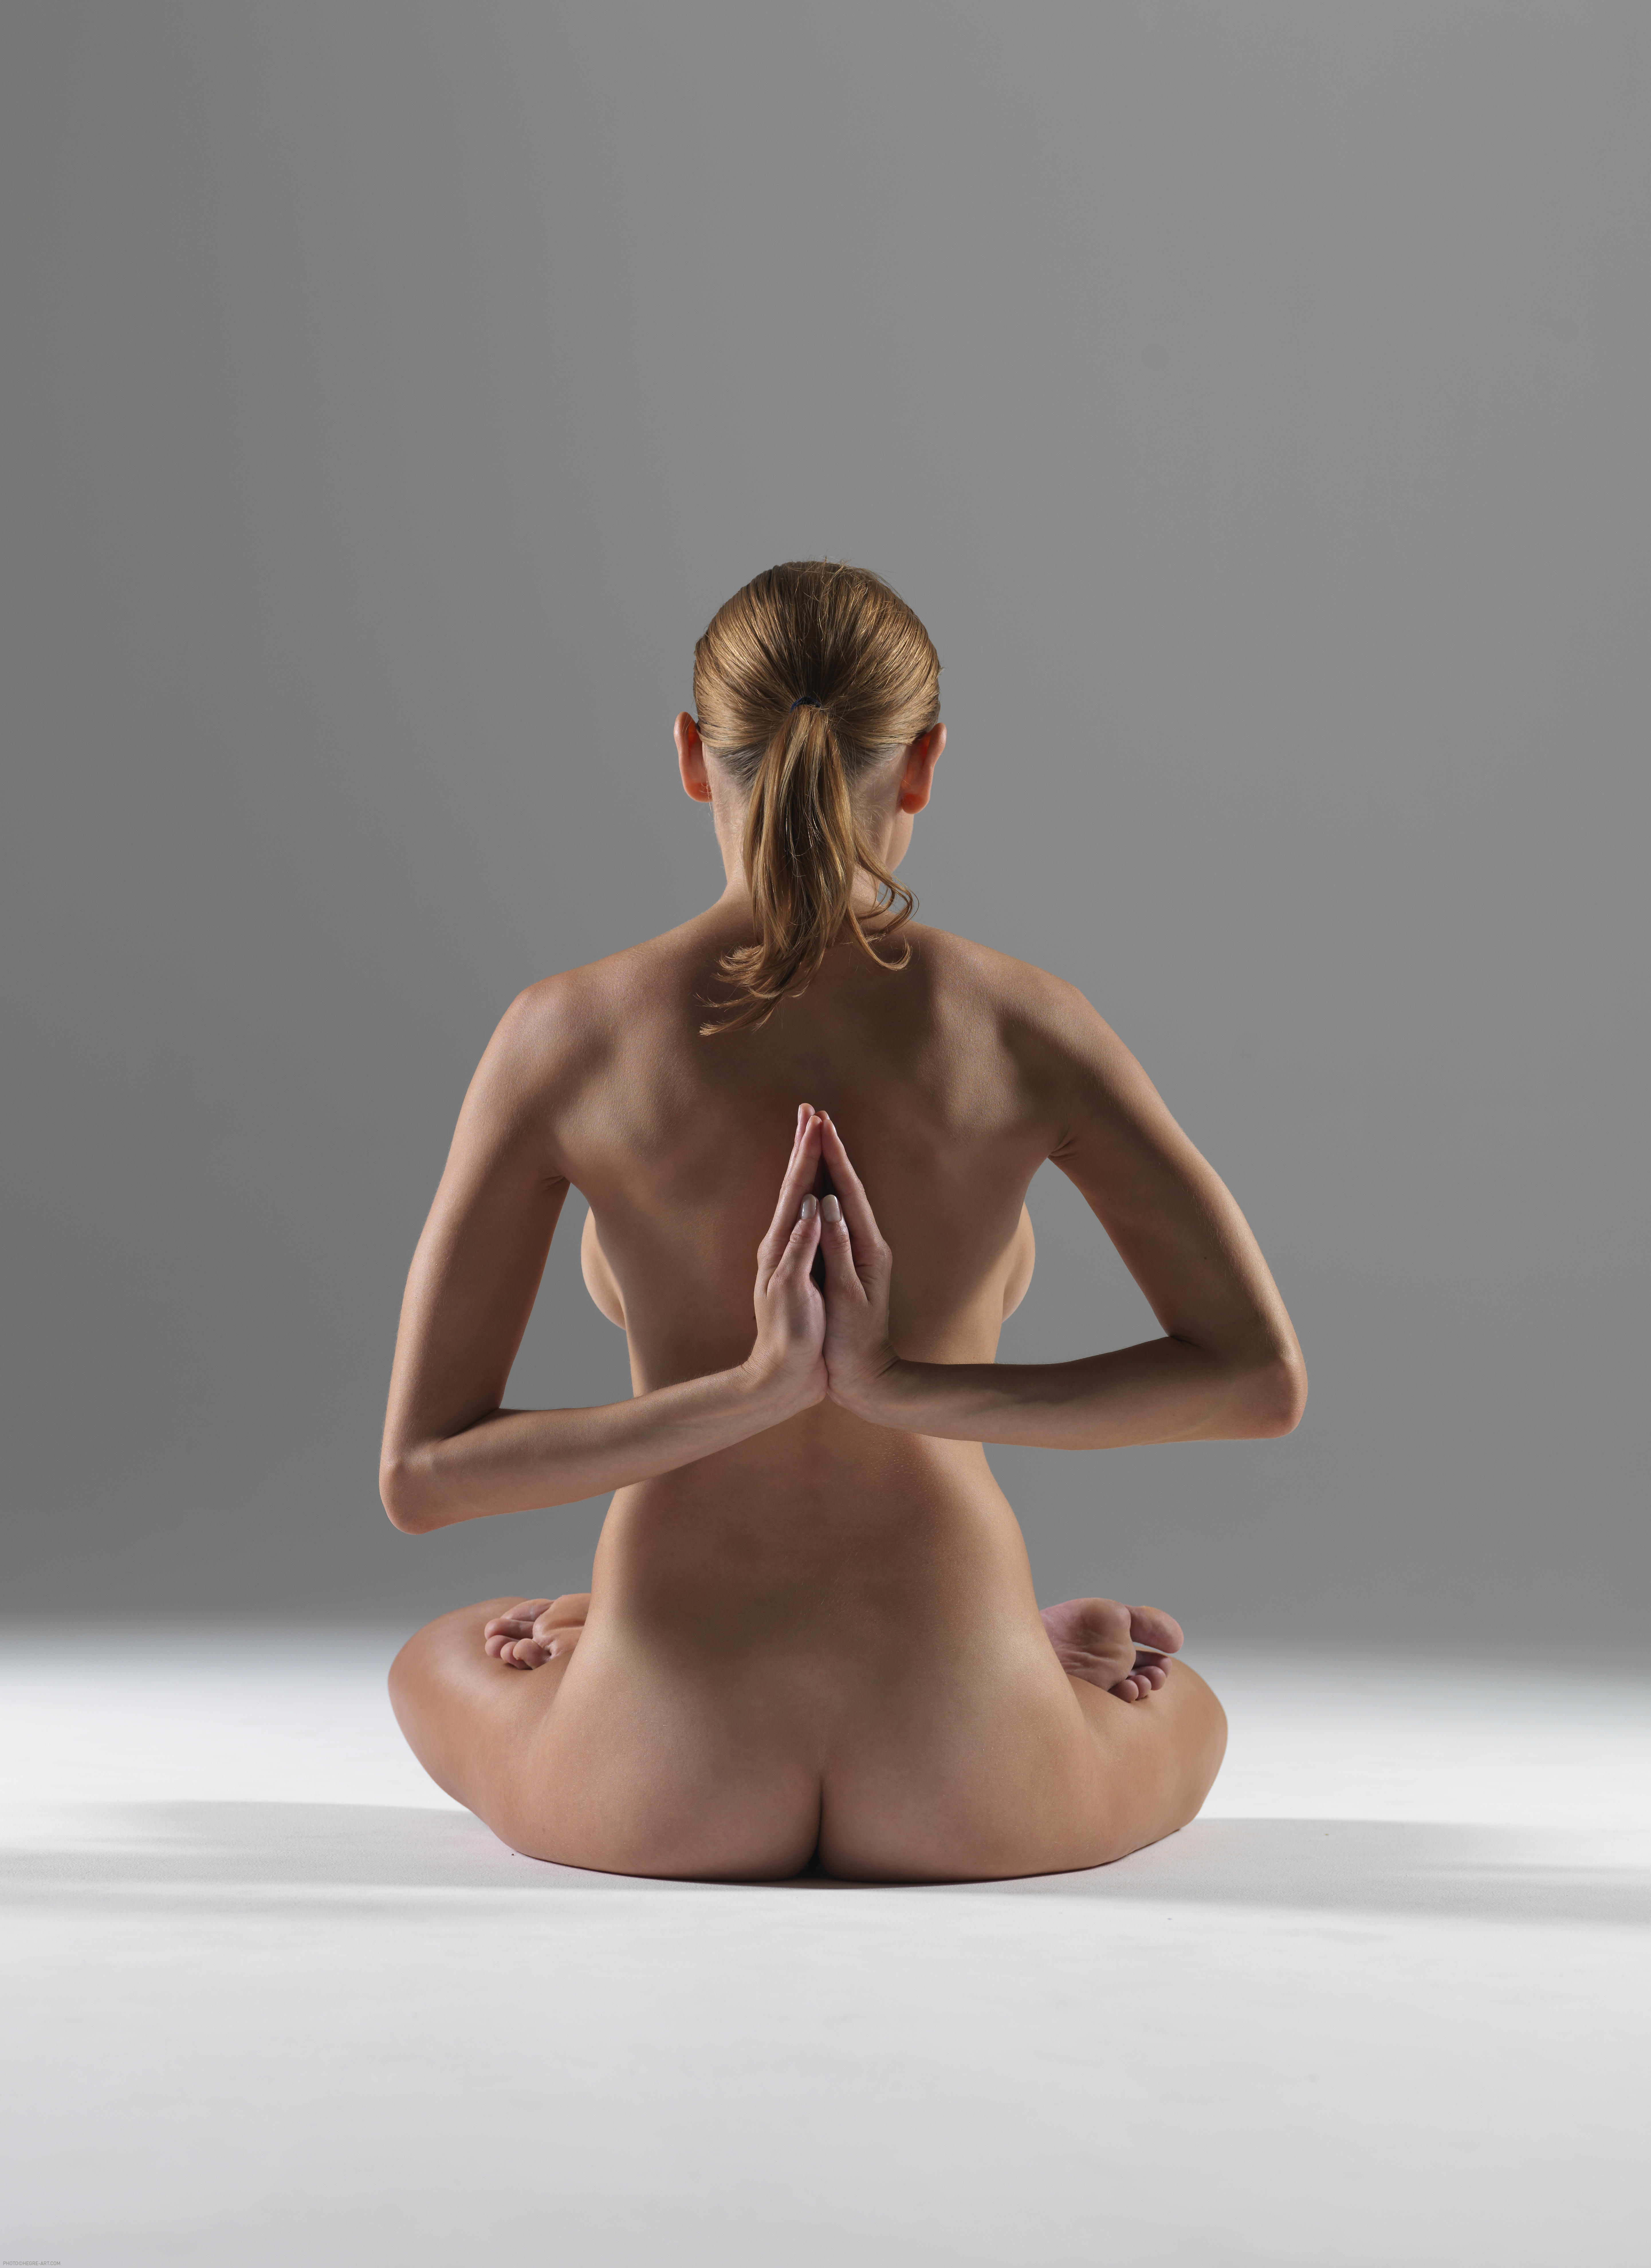 Yoga sex porn videos and pics with flexible naked girls